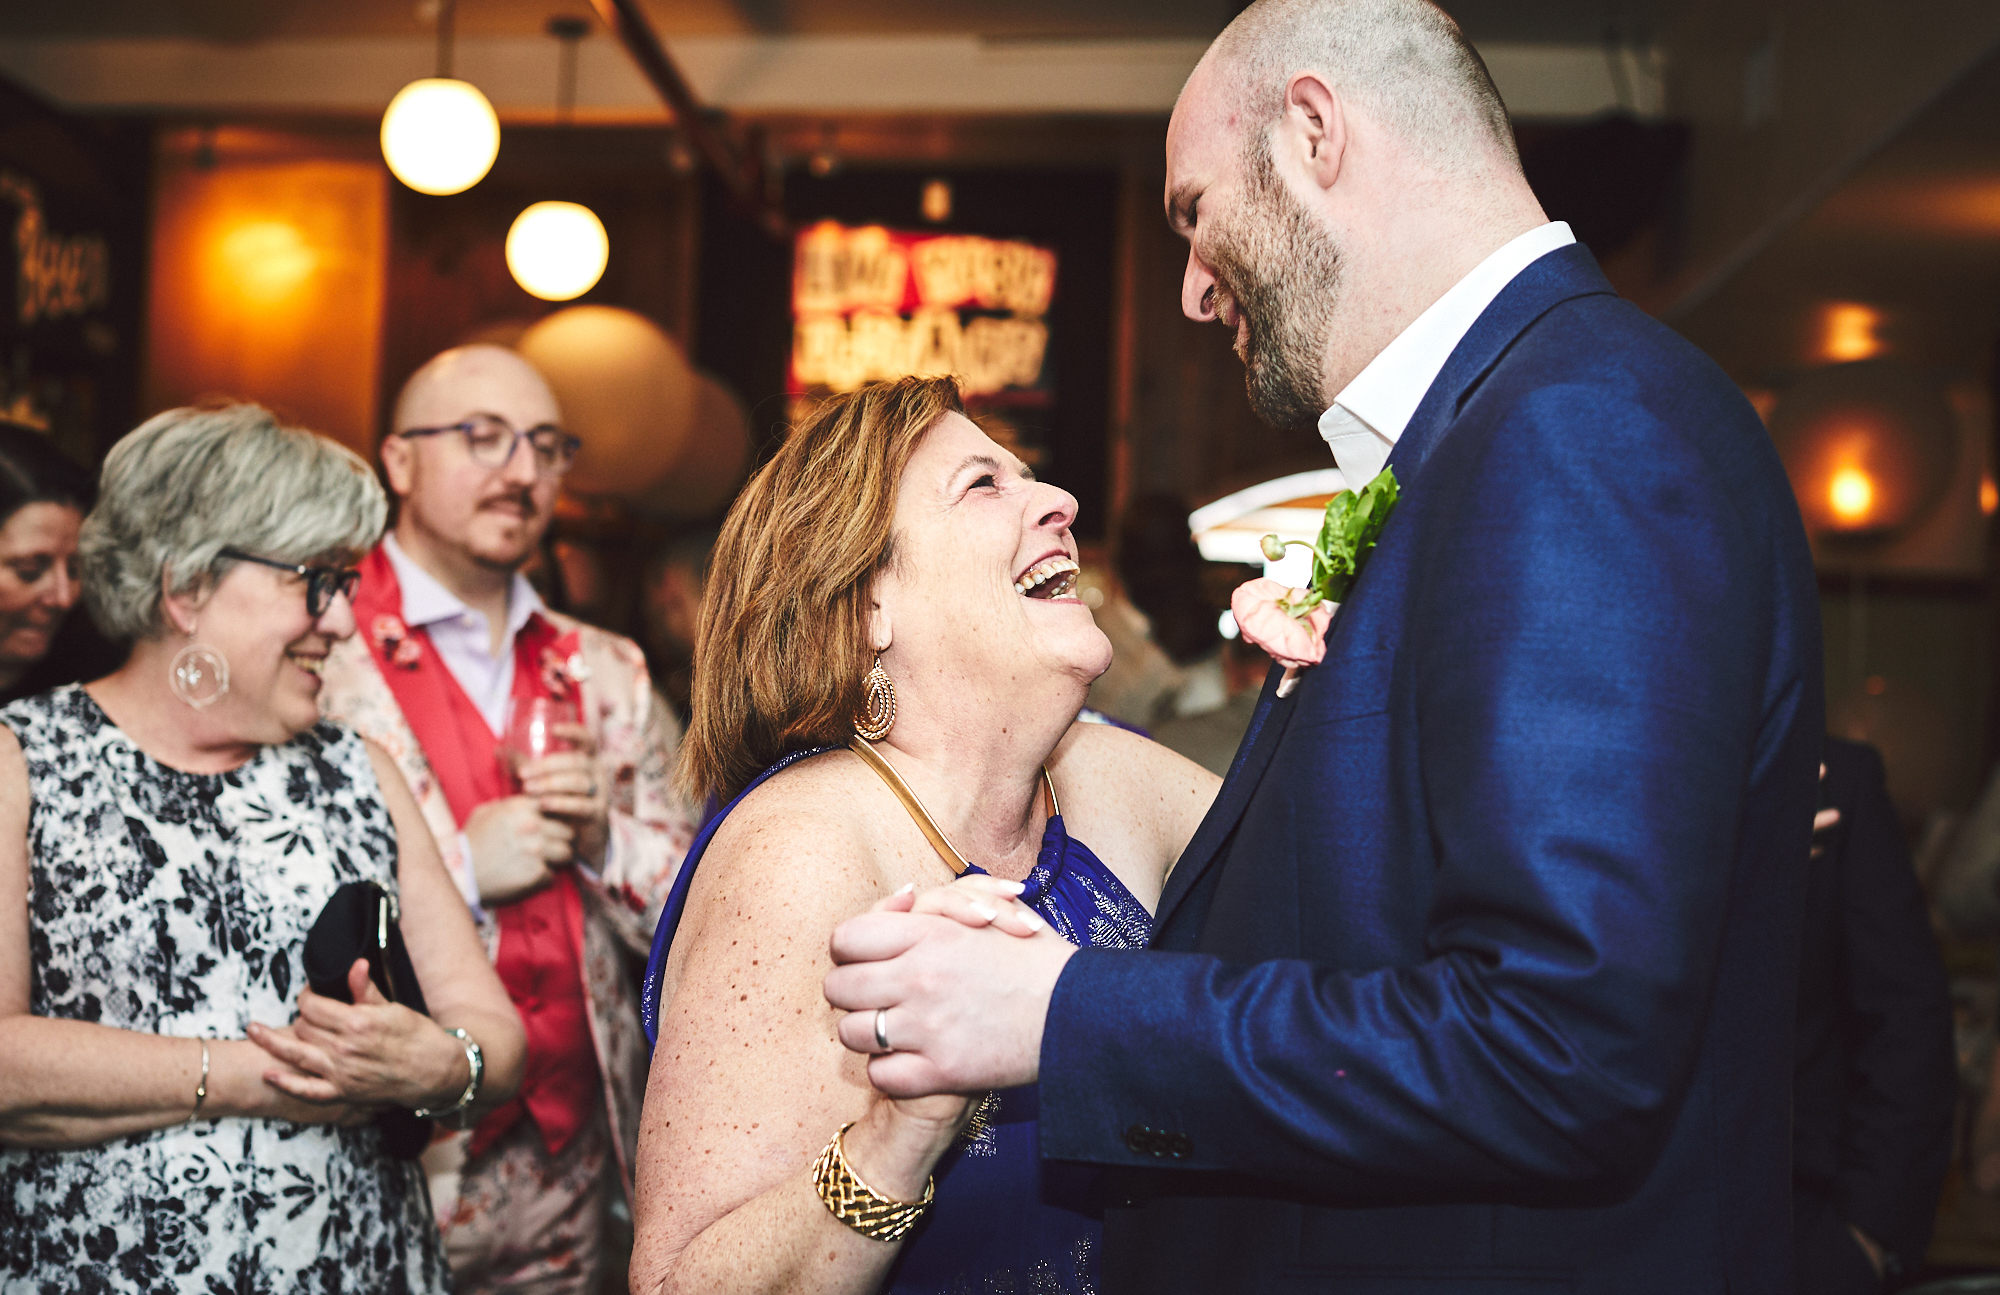 190518_SpringThreesBreweryWedding_By_BriJohnsonWeddings_0117.jpg